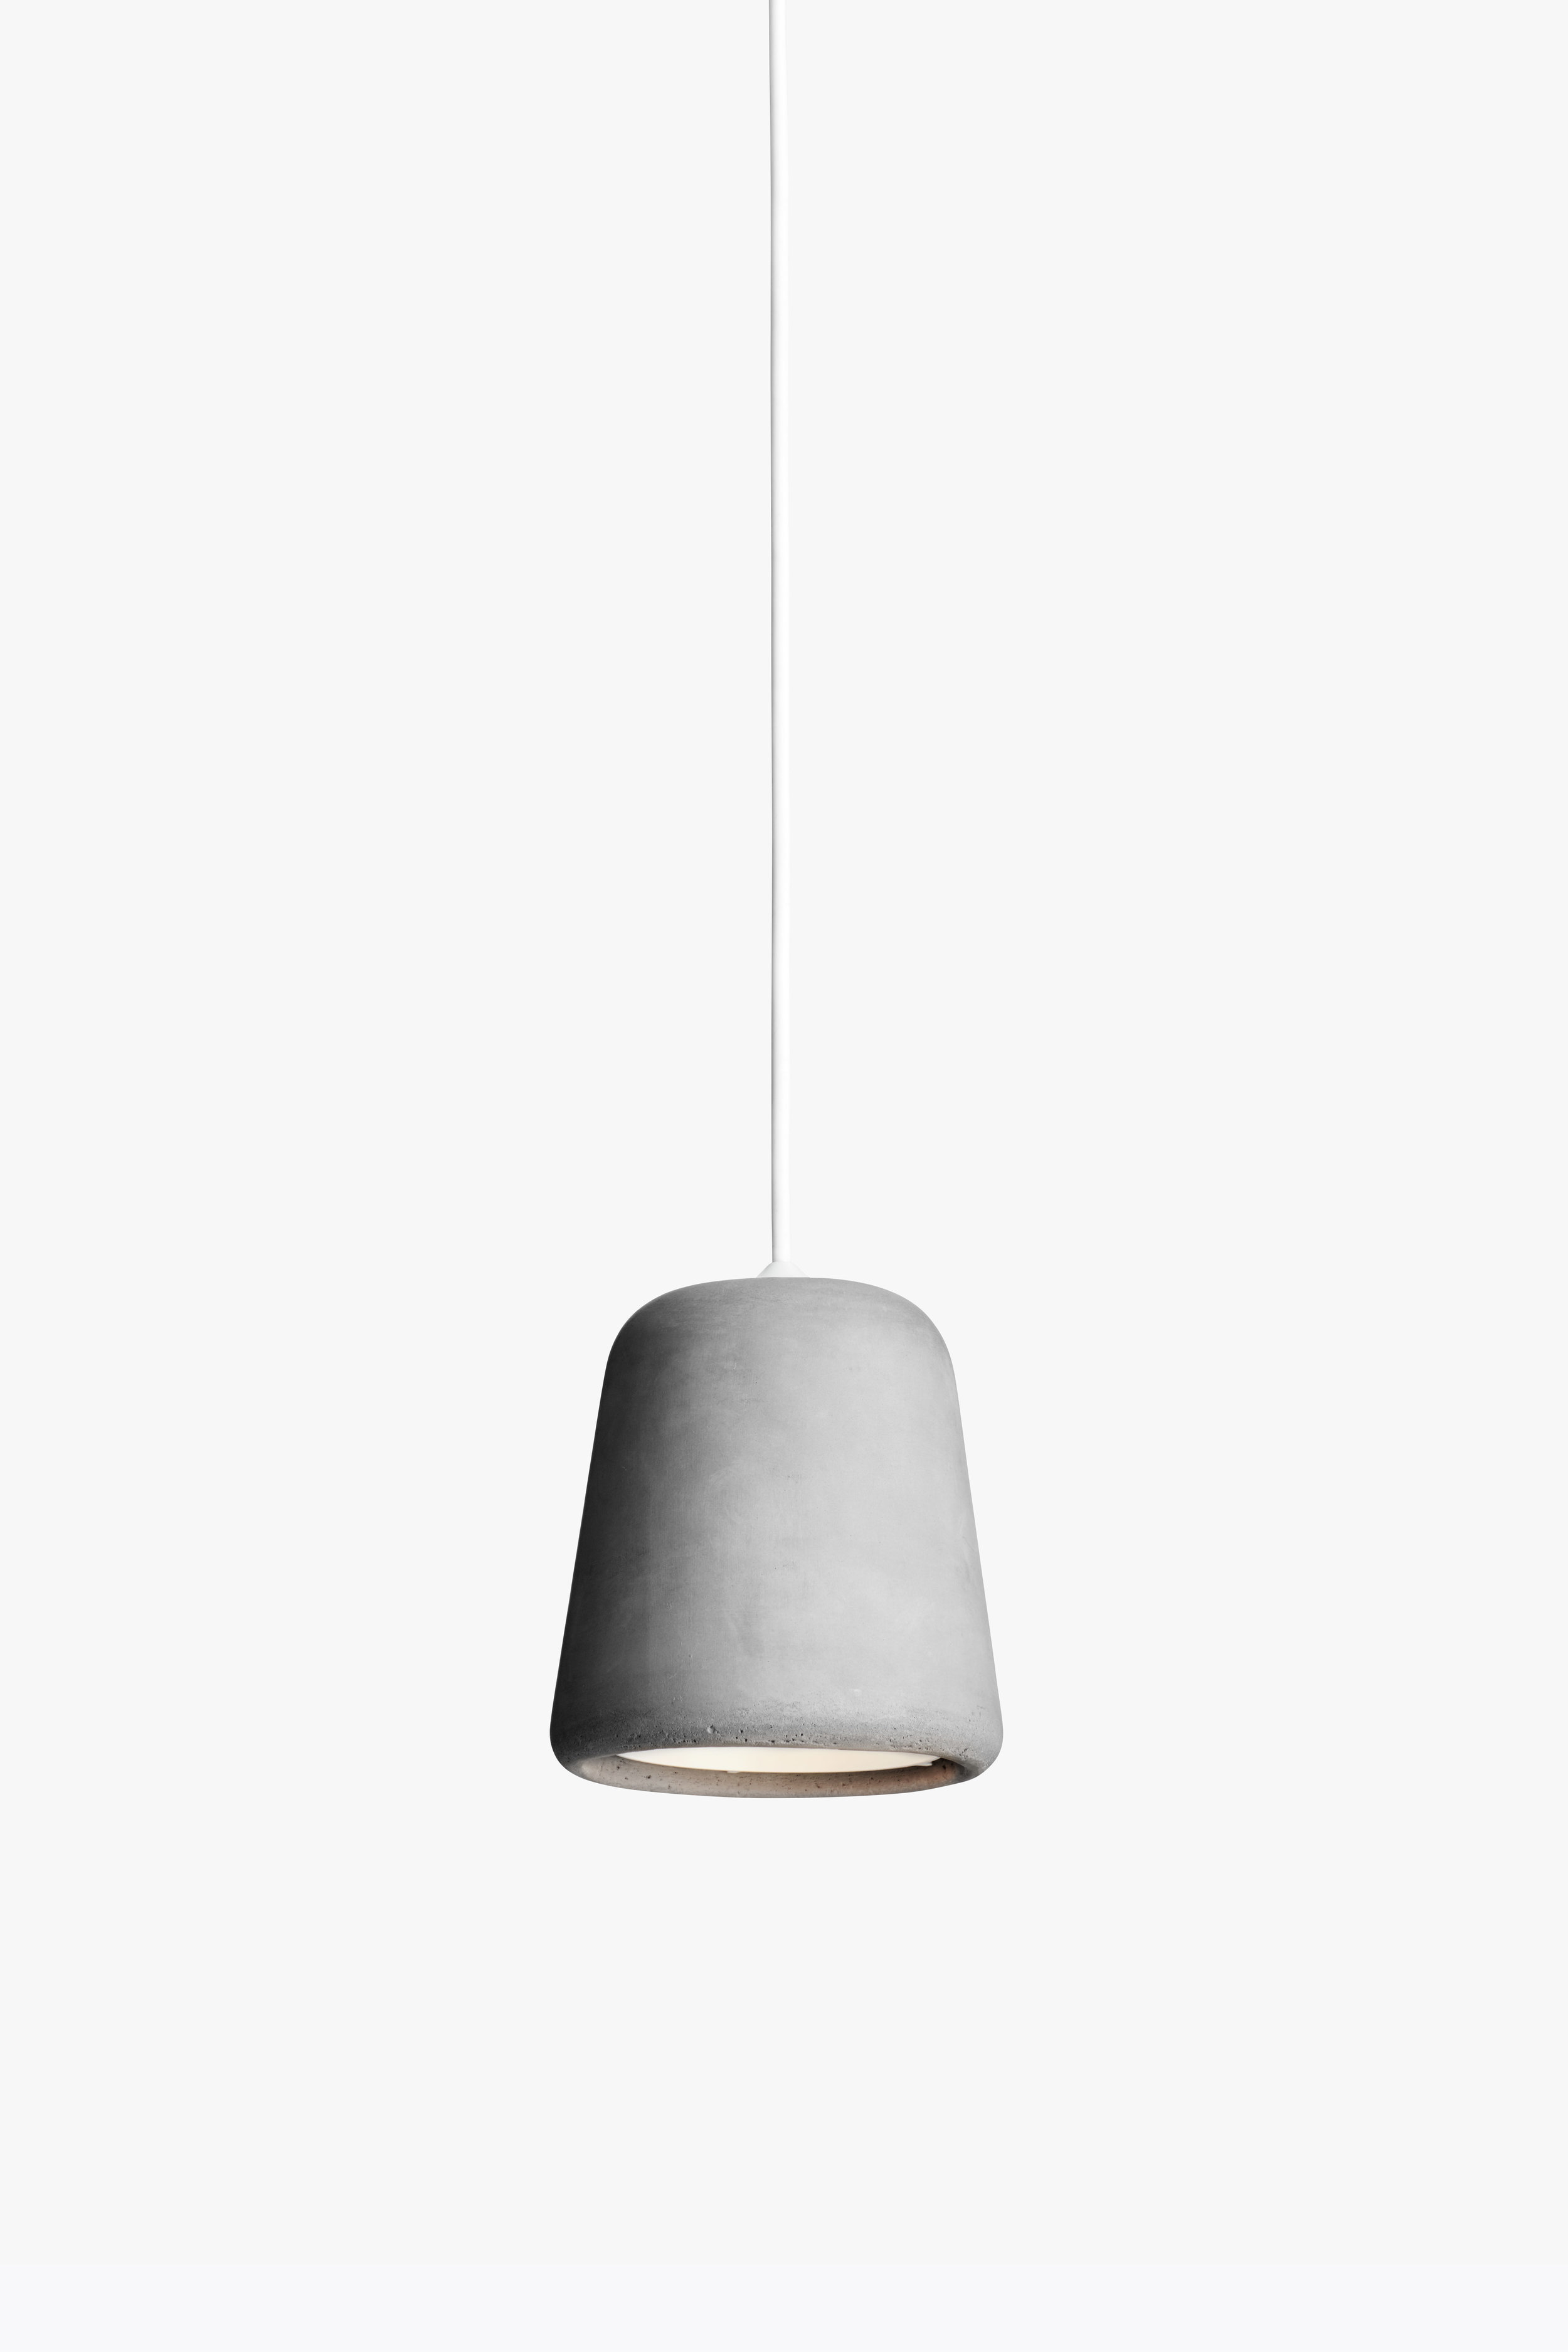 Material Pendant, Light Grey Concrete, New Works, High Res.jpg